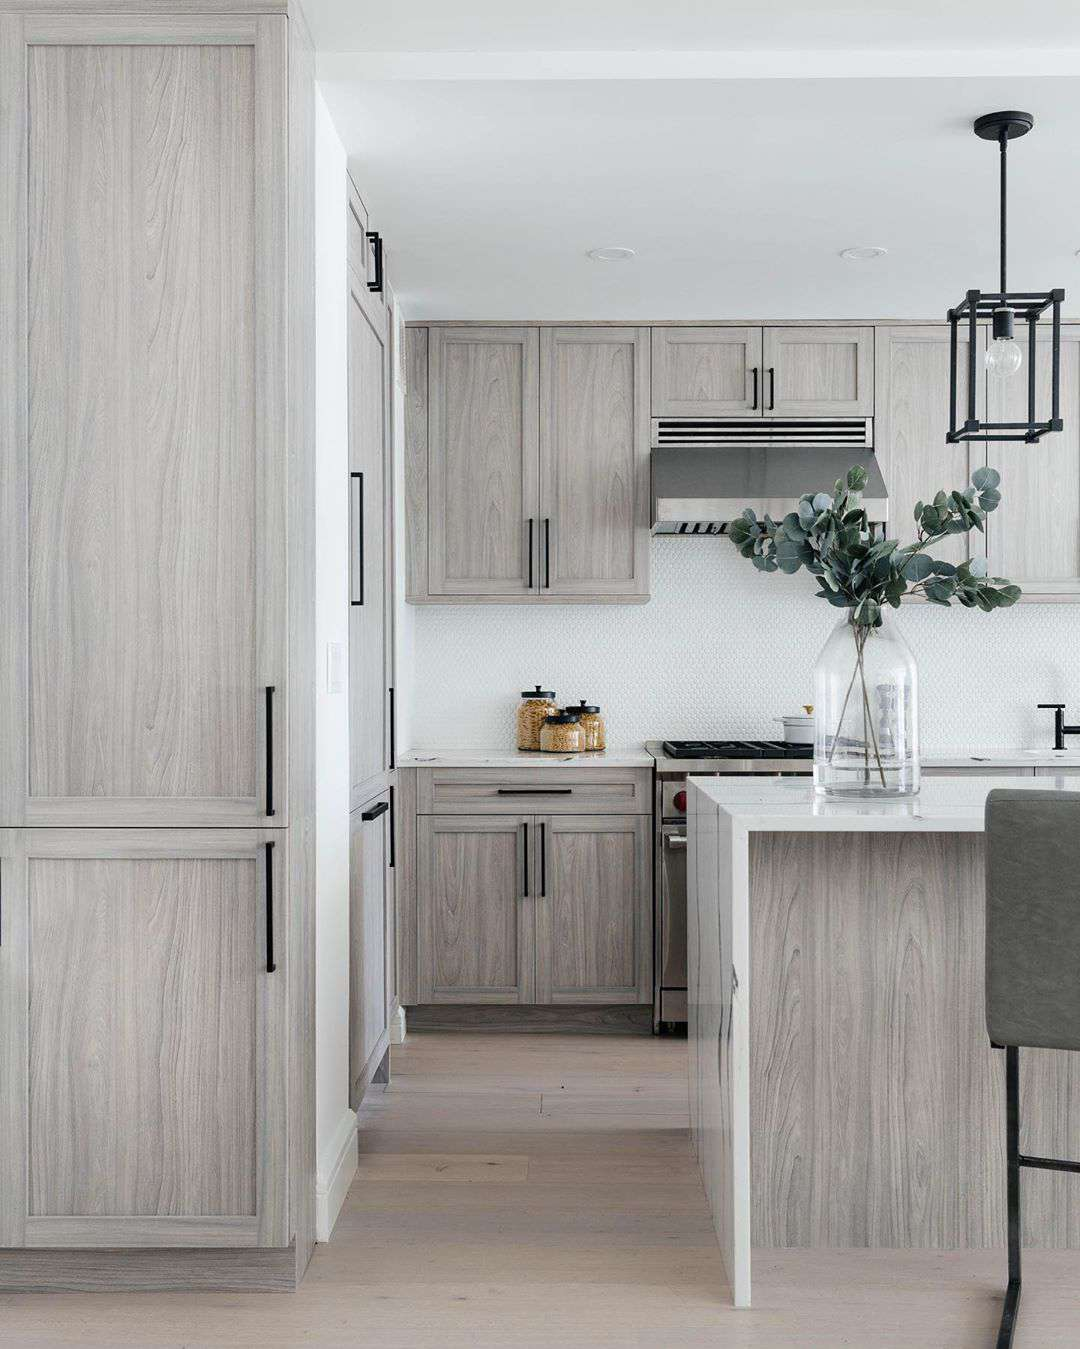 Large kitchen with gray washed cabinets